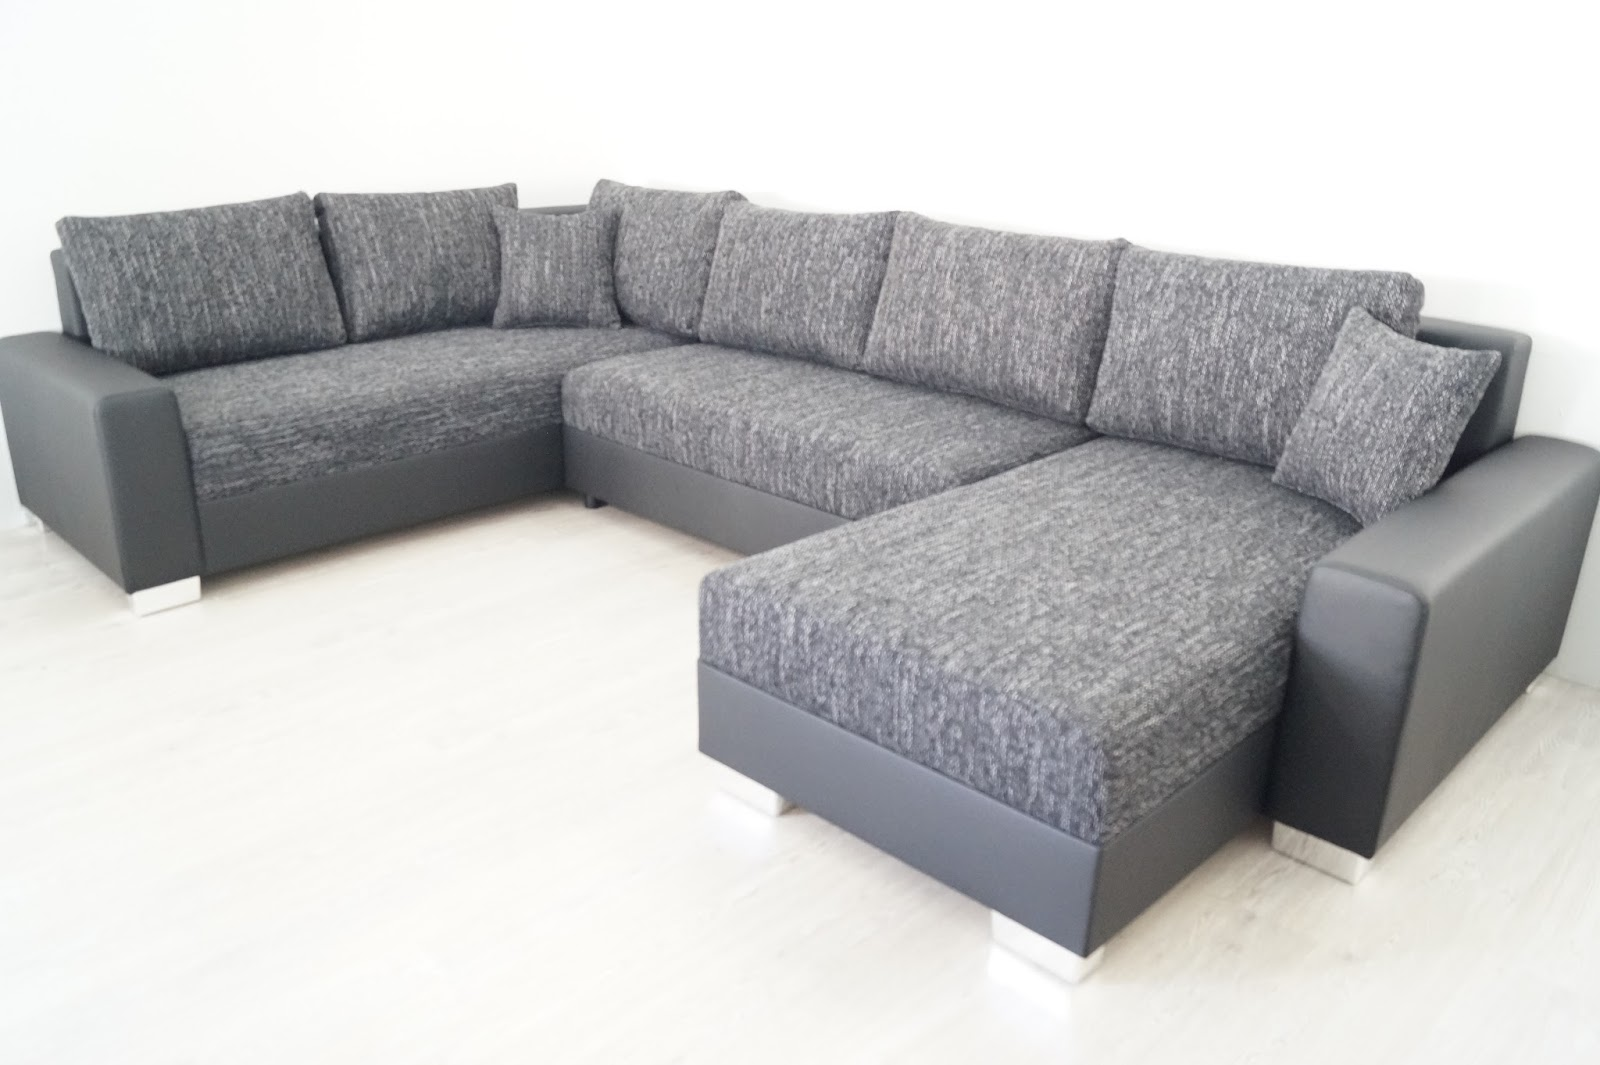 sofa lagerverkauf sofa couch sofa g nstig. Black Bedroom Furniture Sets. Home Design Ideas